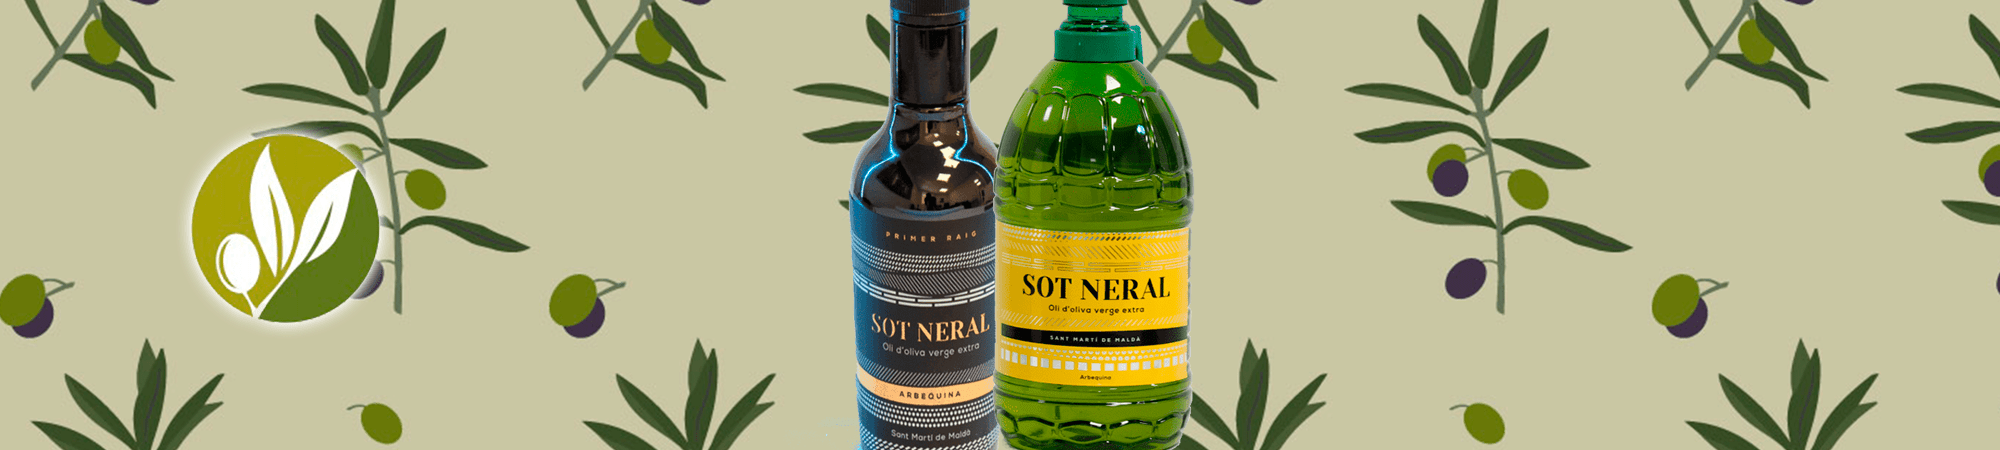 Aceites Sot Neral